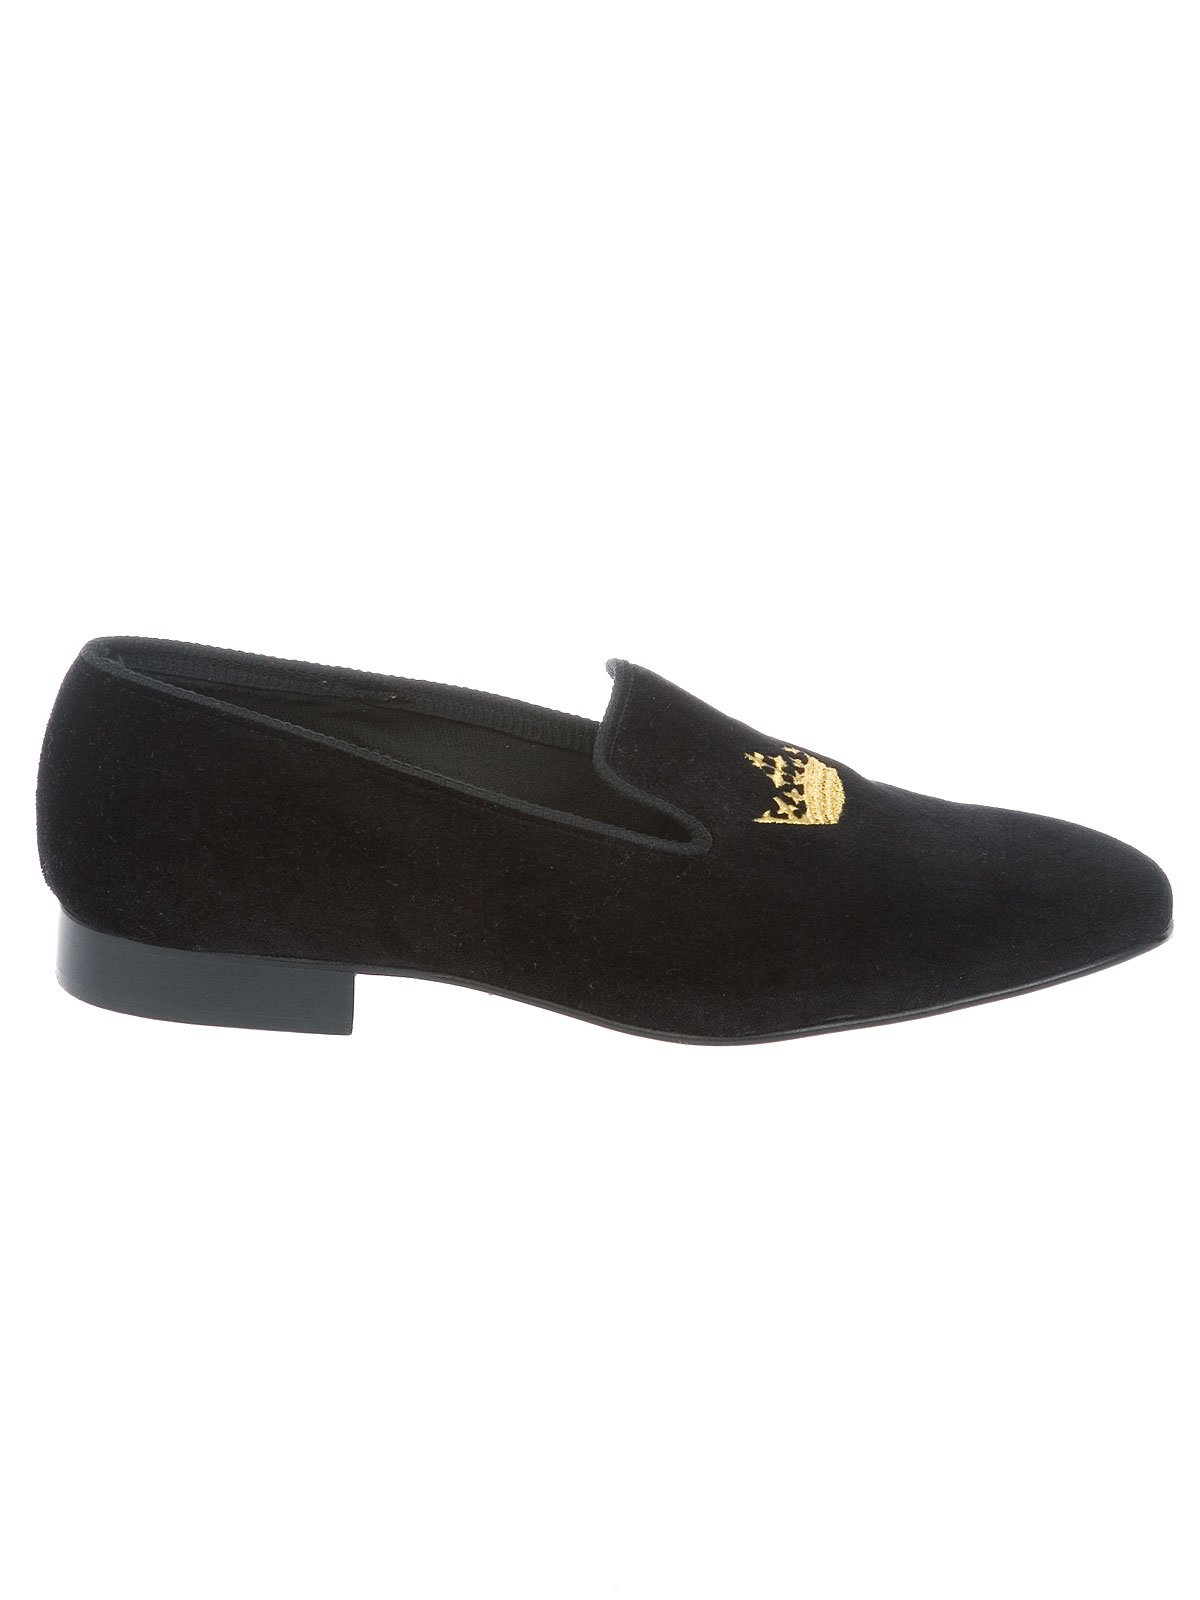 Picture of CHURCH'S | Sovereign Crown Velvet Slipper